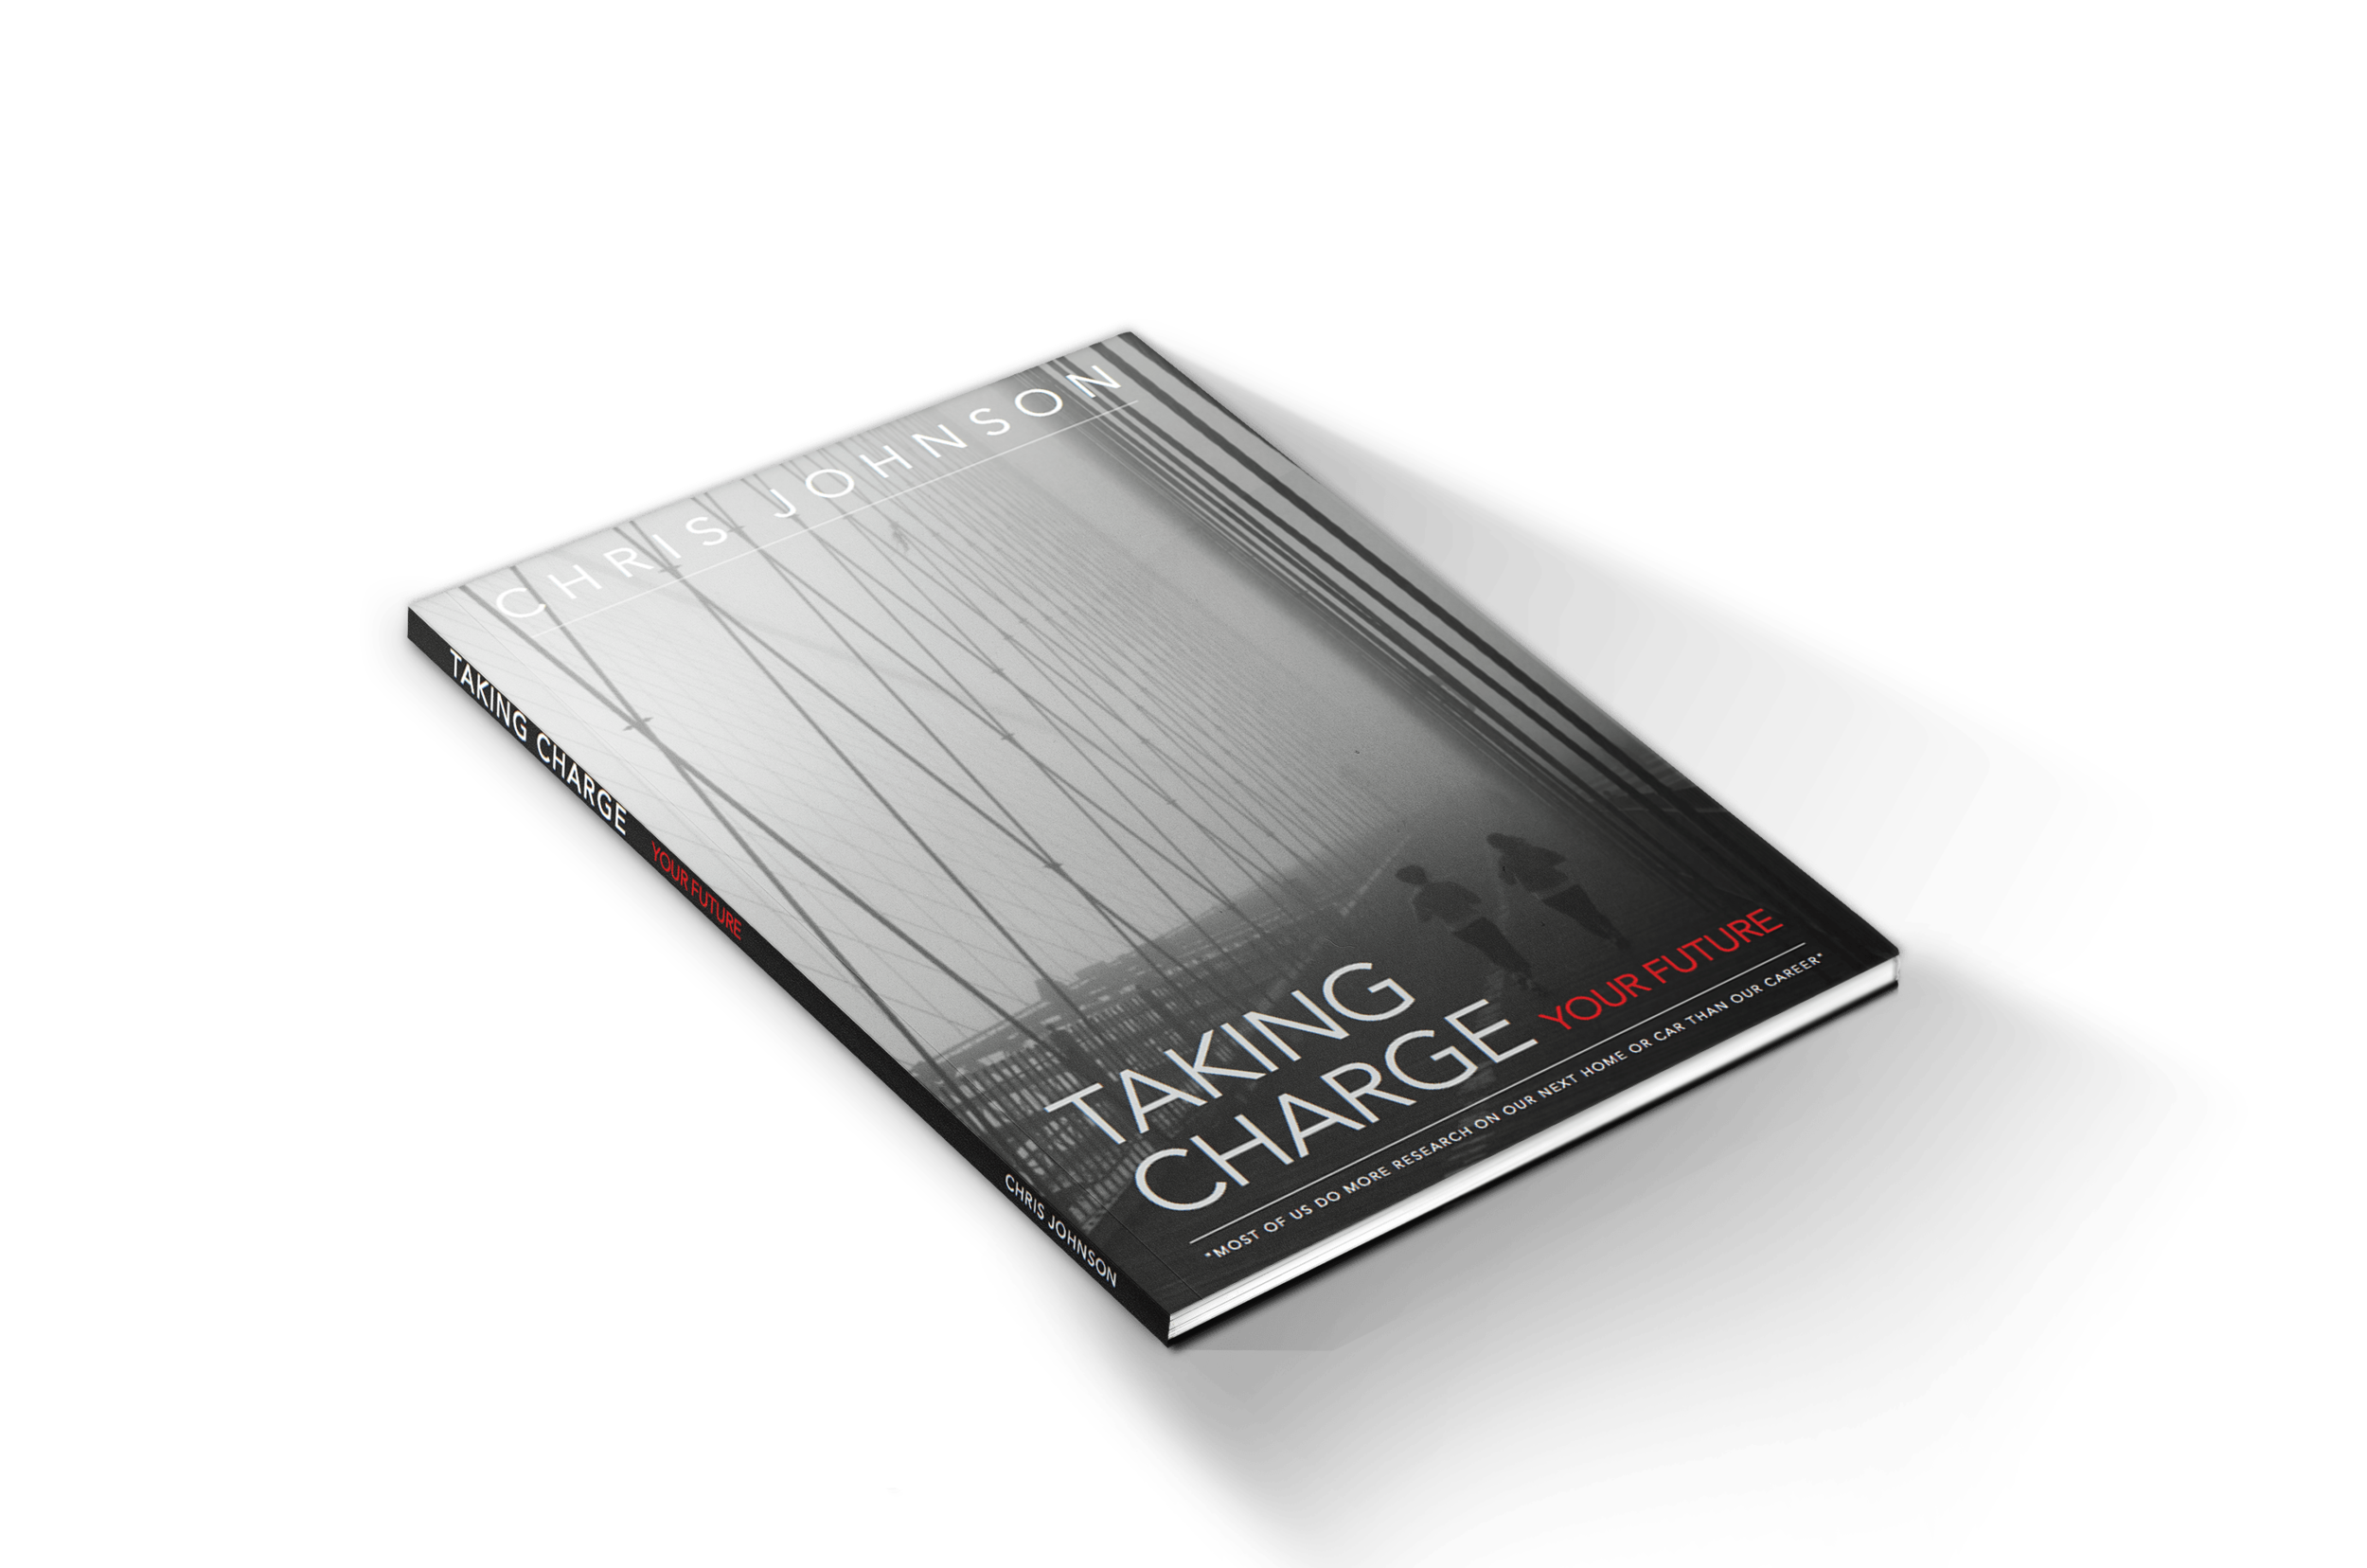 Chris Johnson, Executive Coach based in Auckland, New Zealand is the author of the book Taking Charge